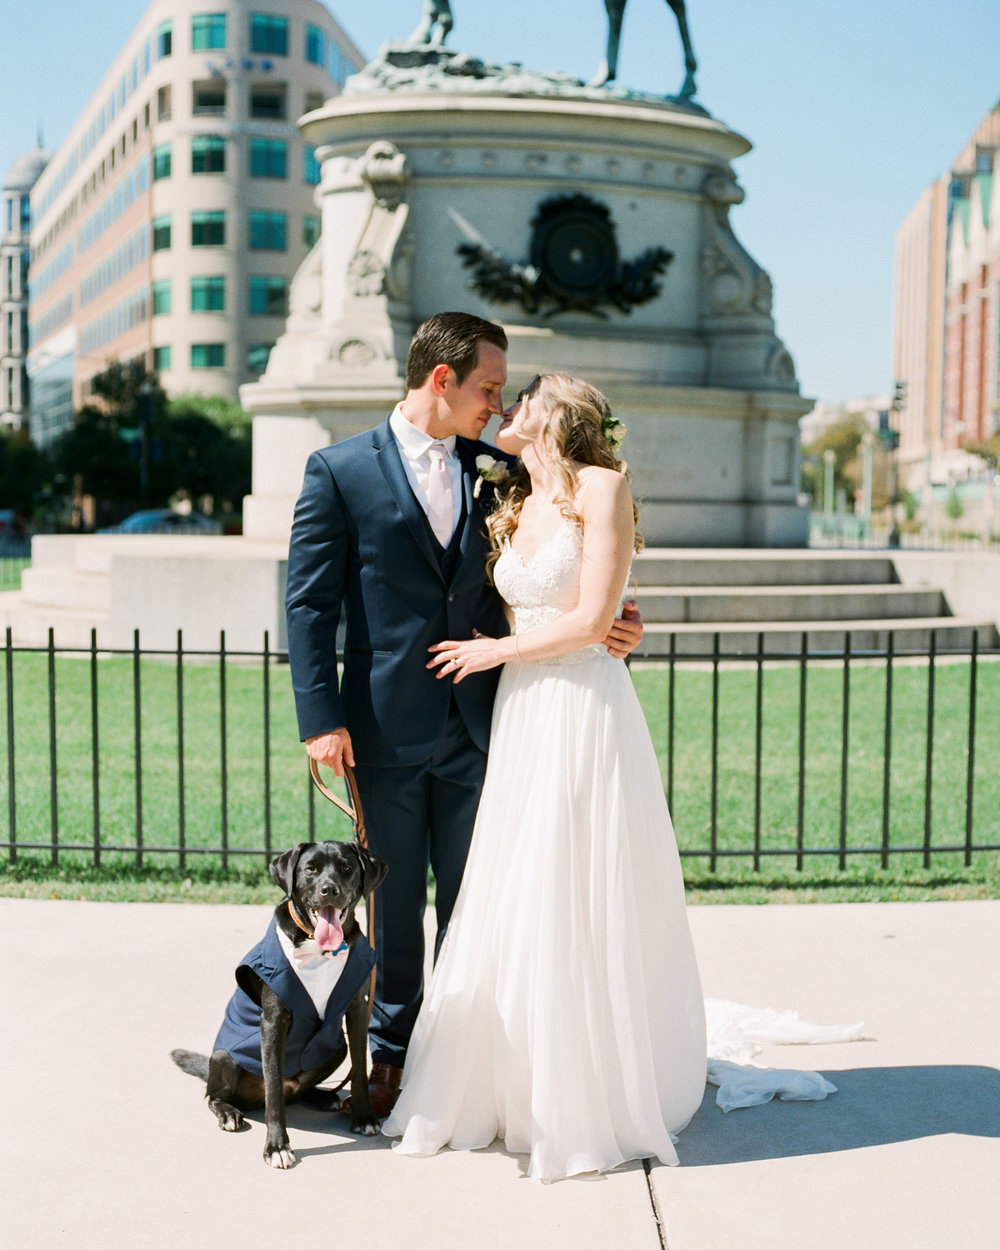 LongView-Gallery-Wedding-Art-Washington-DC-Film-Photographer-8.jpg